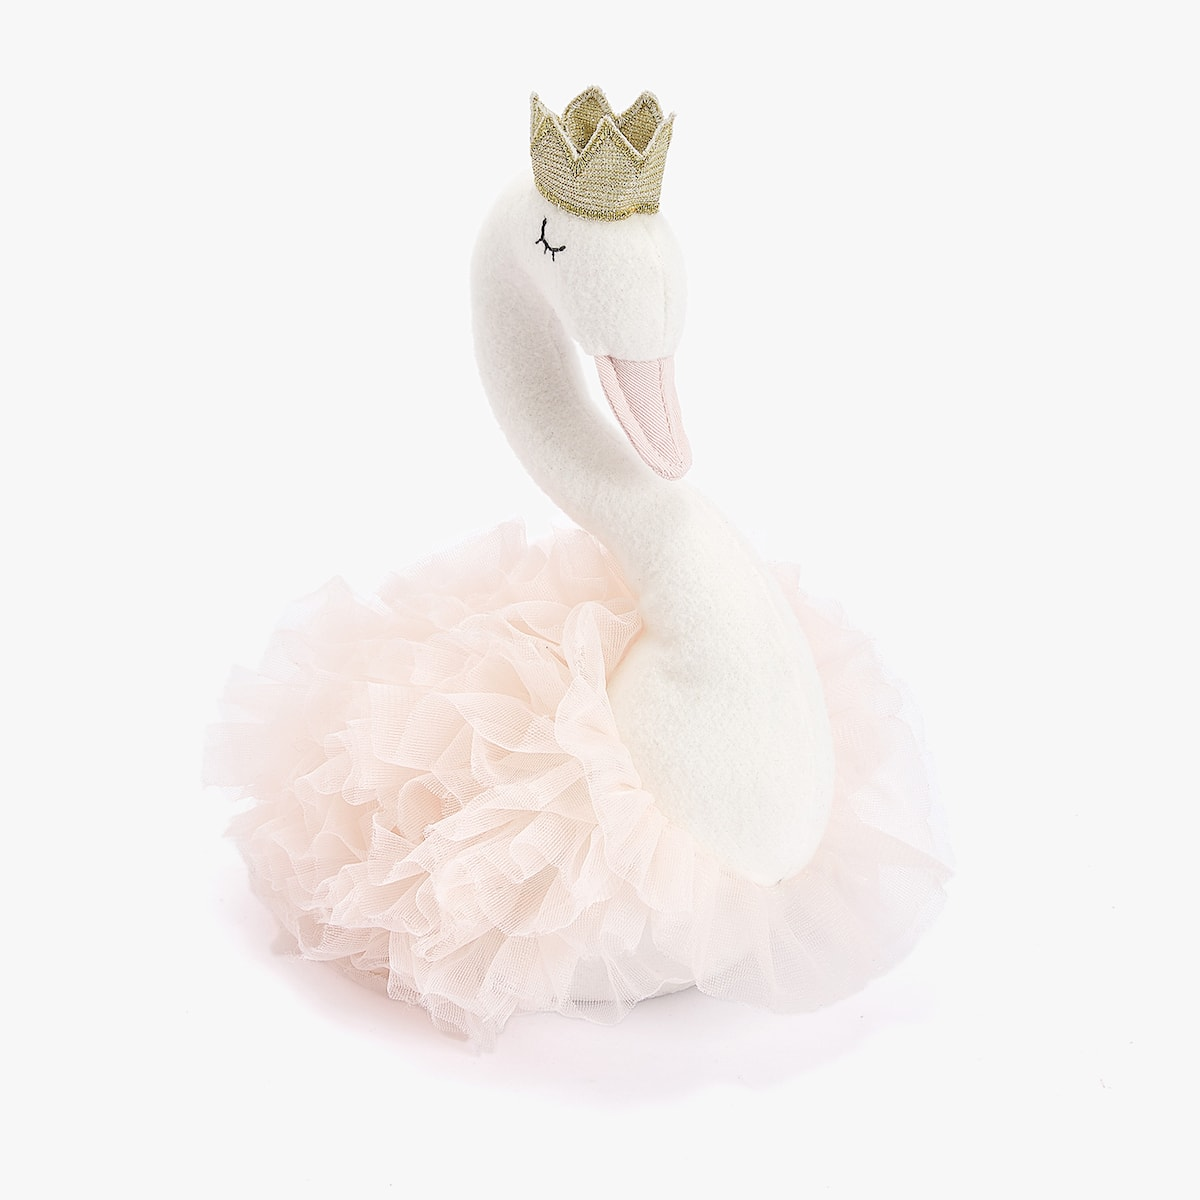 + Image 1 of the product SWAN DOORSTOP & SWAN DOORSTOP - SHOP ONLINE - VARIOUS | Zara Home Greece